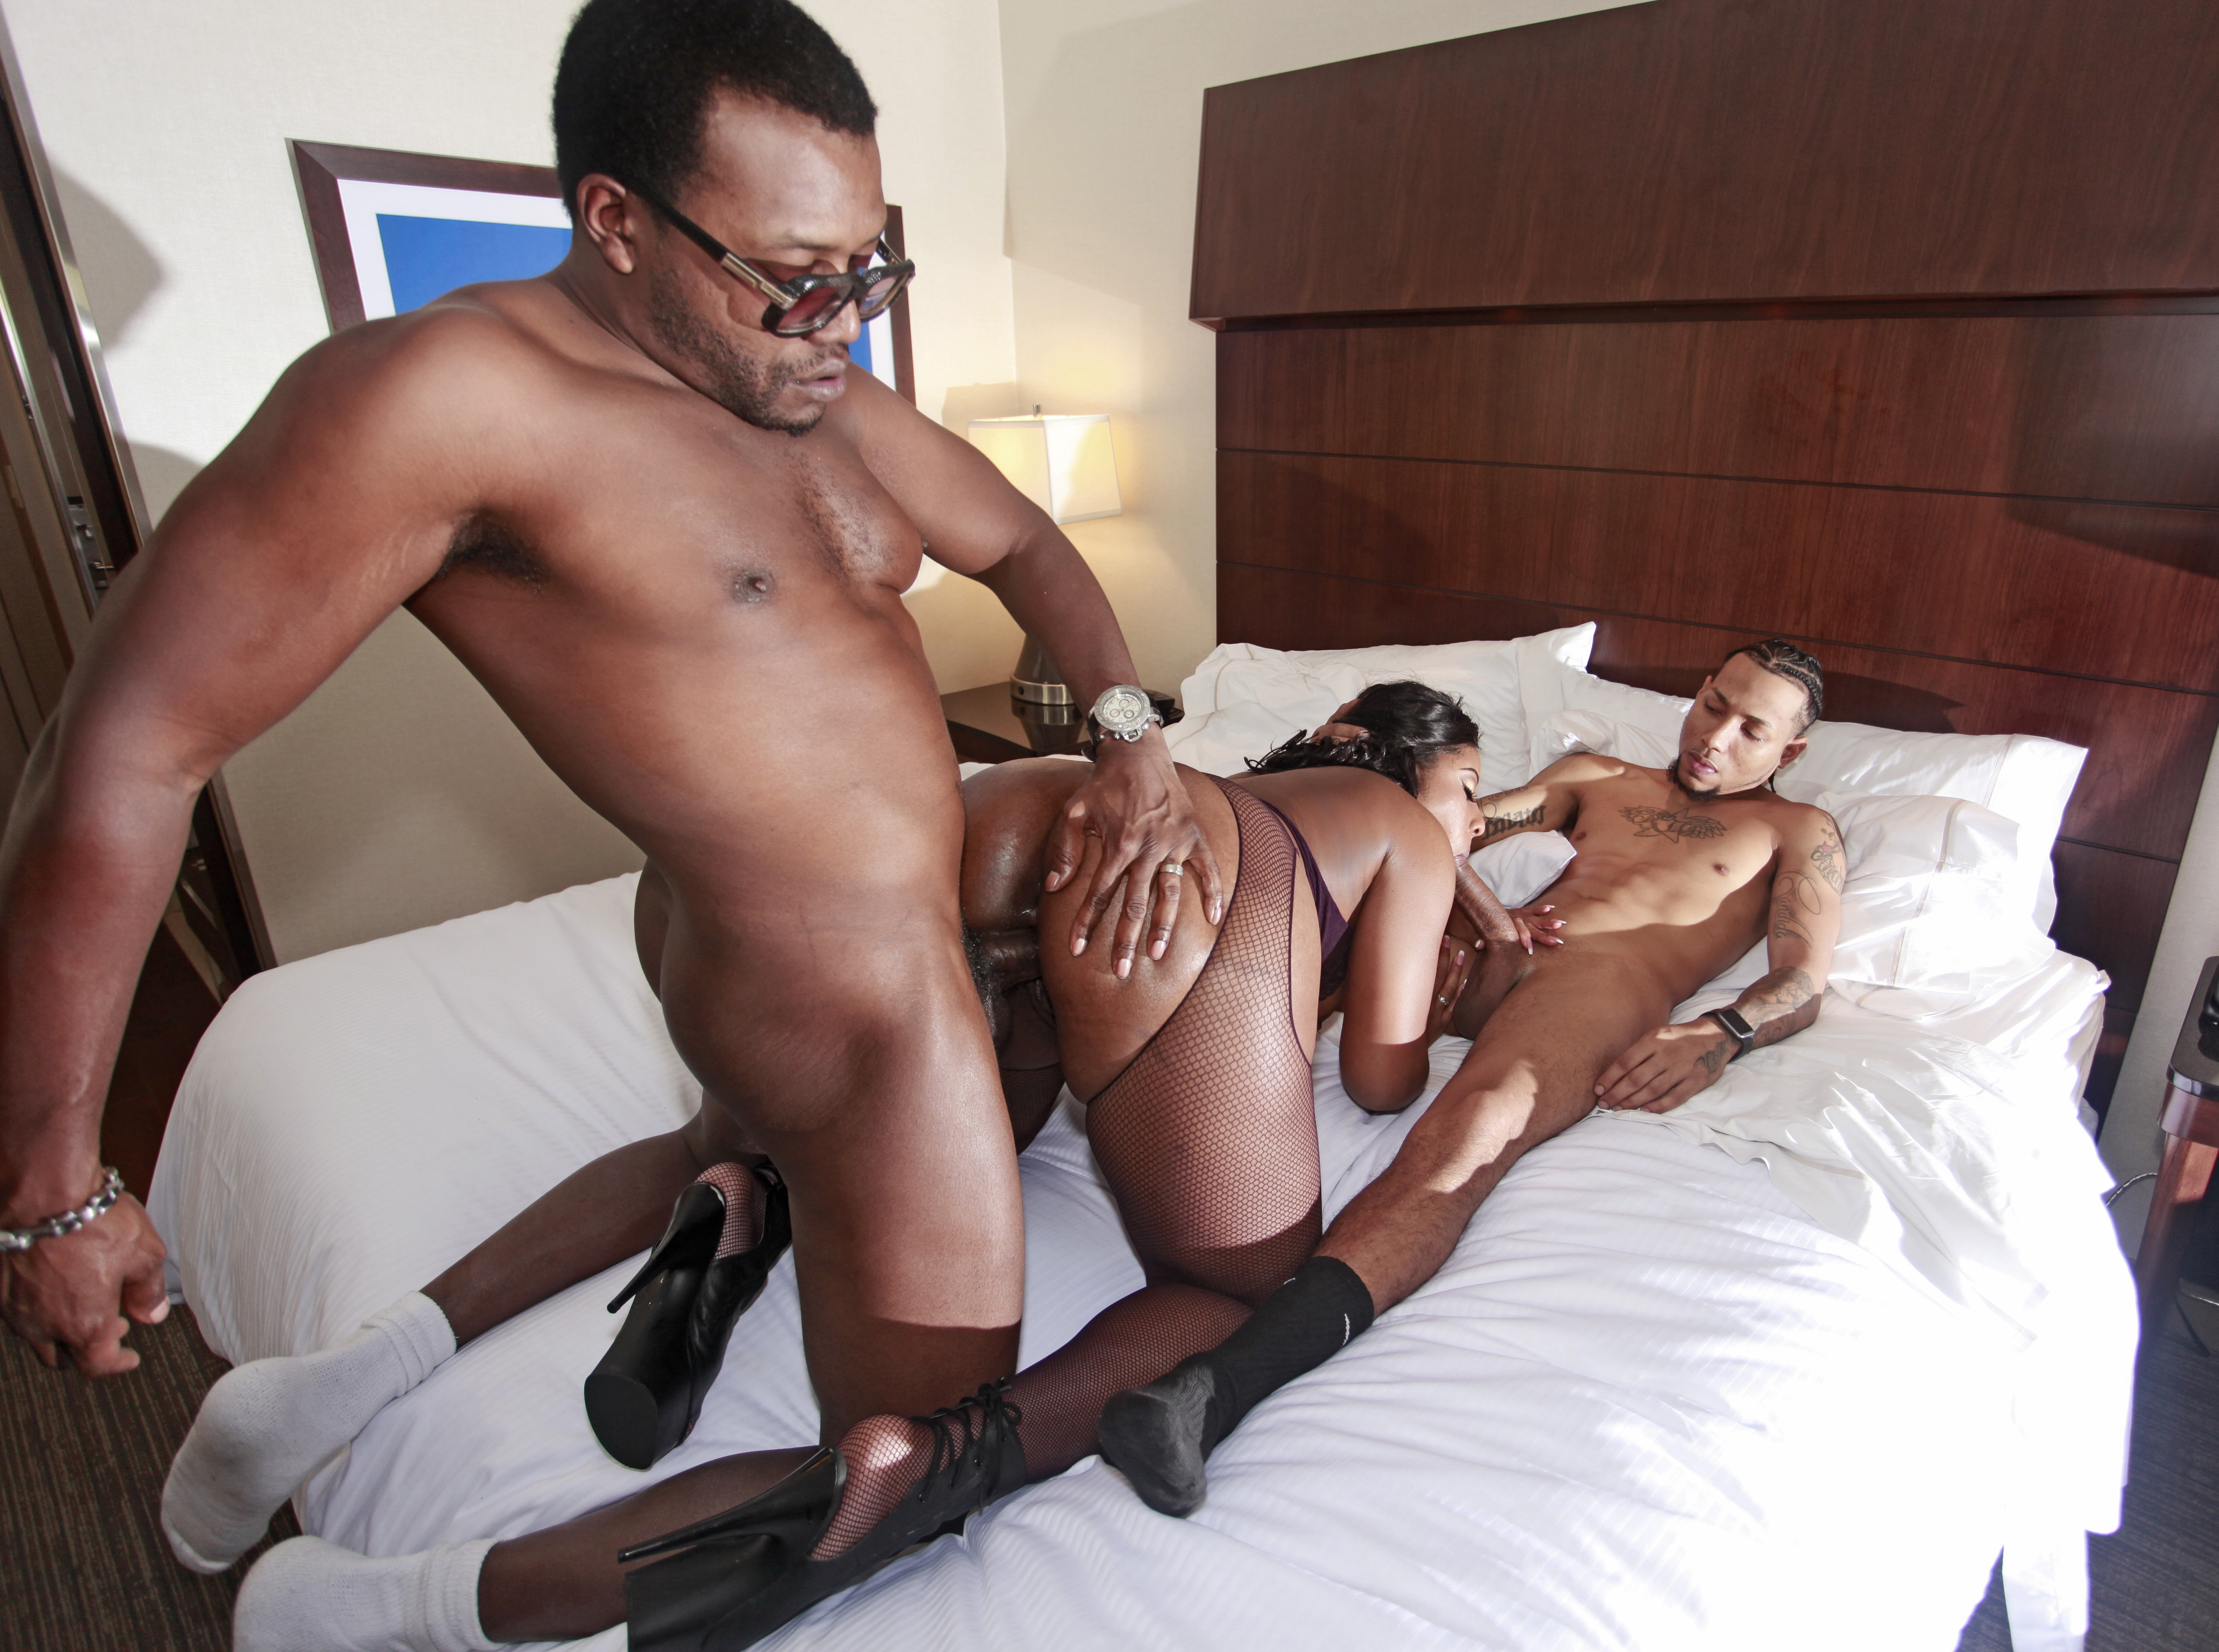 Black girl fuck whil visiting house